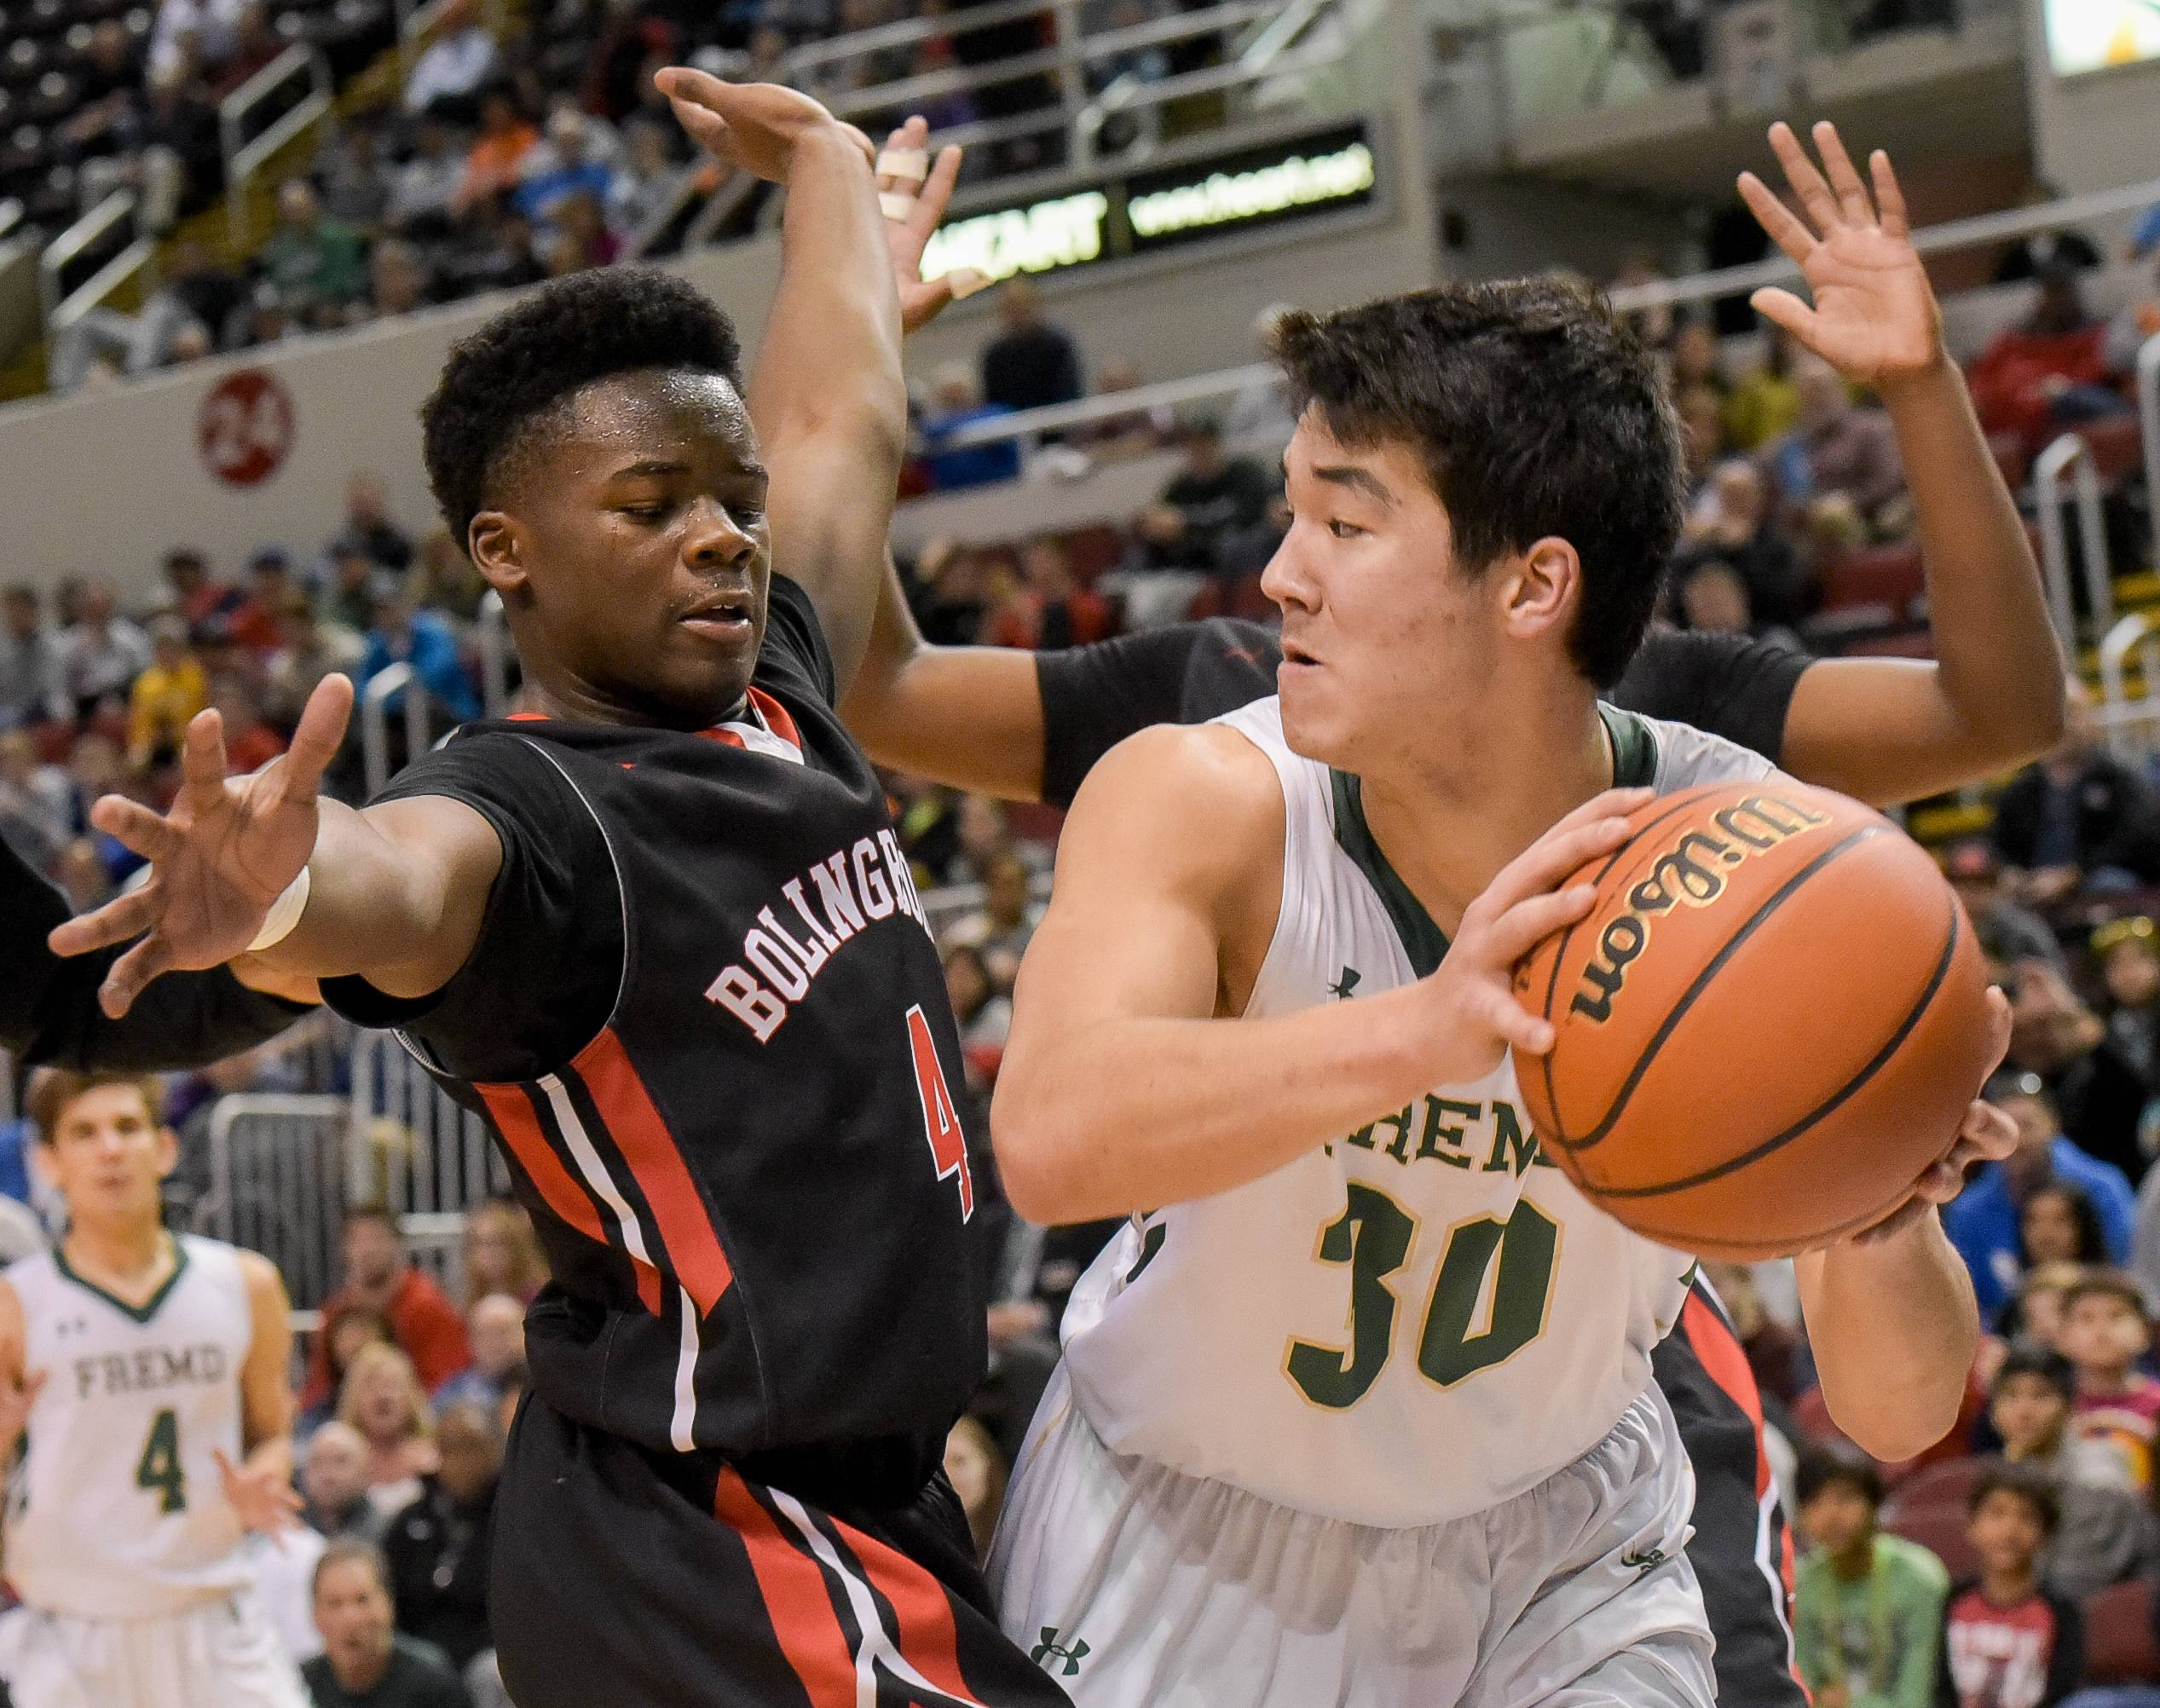 Fremd's Ryan Martin looks to pass around Bolingbrook's Isaiah Clemmons during the Class 4A third-place game on Saturday in Peoria.